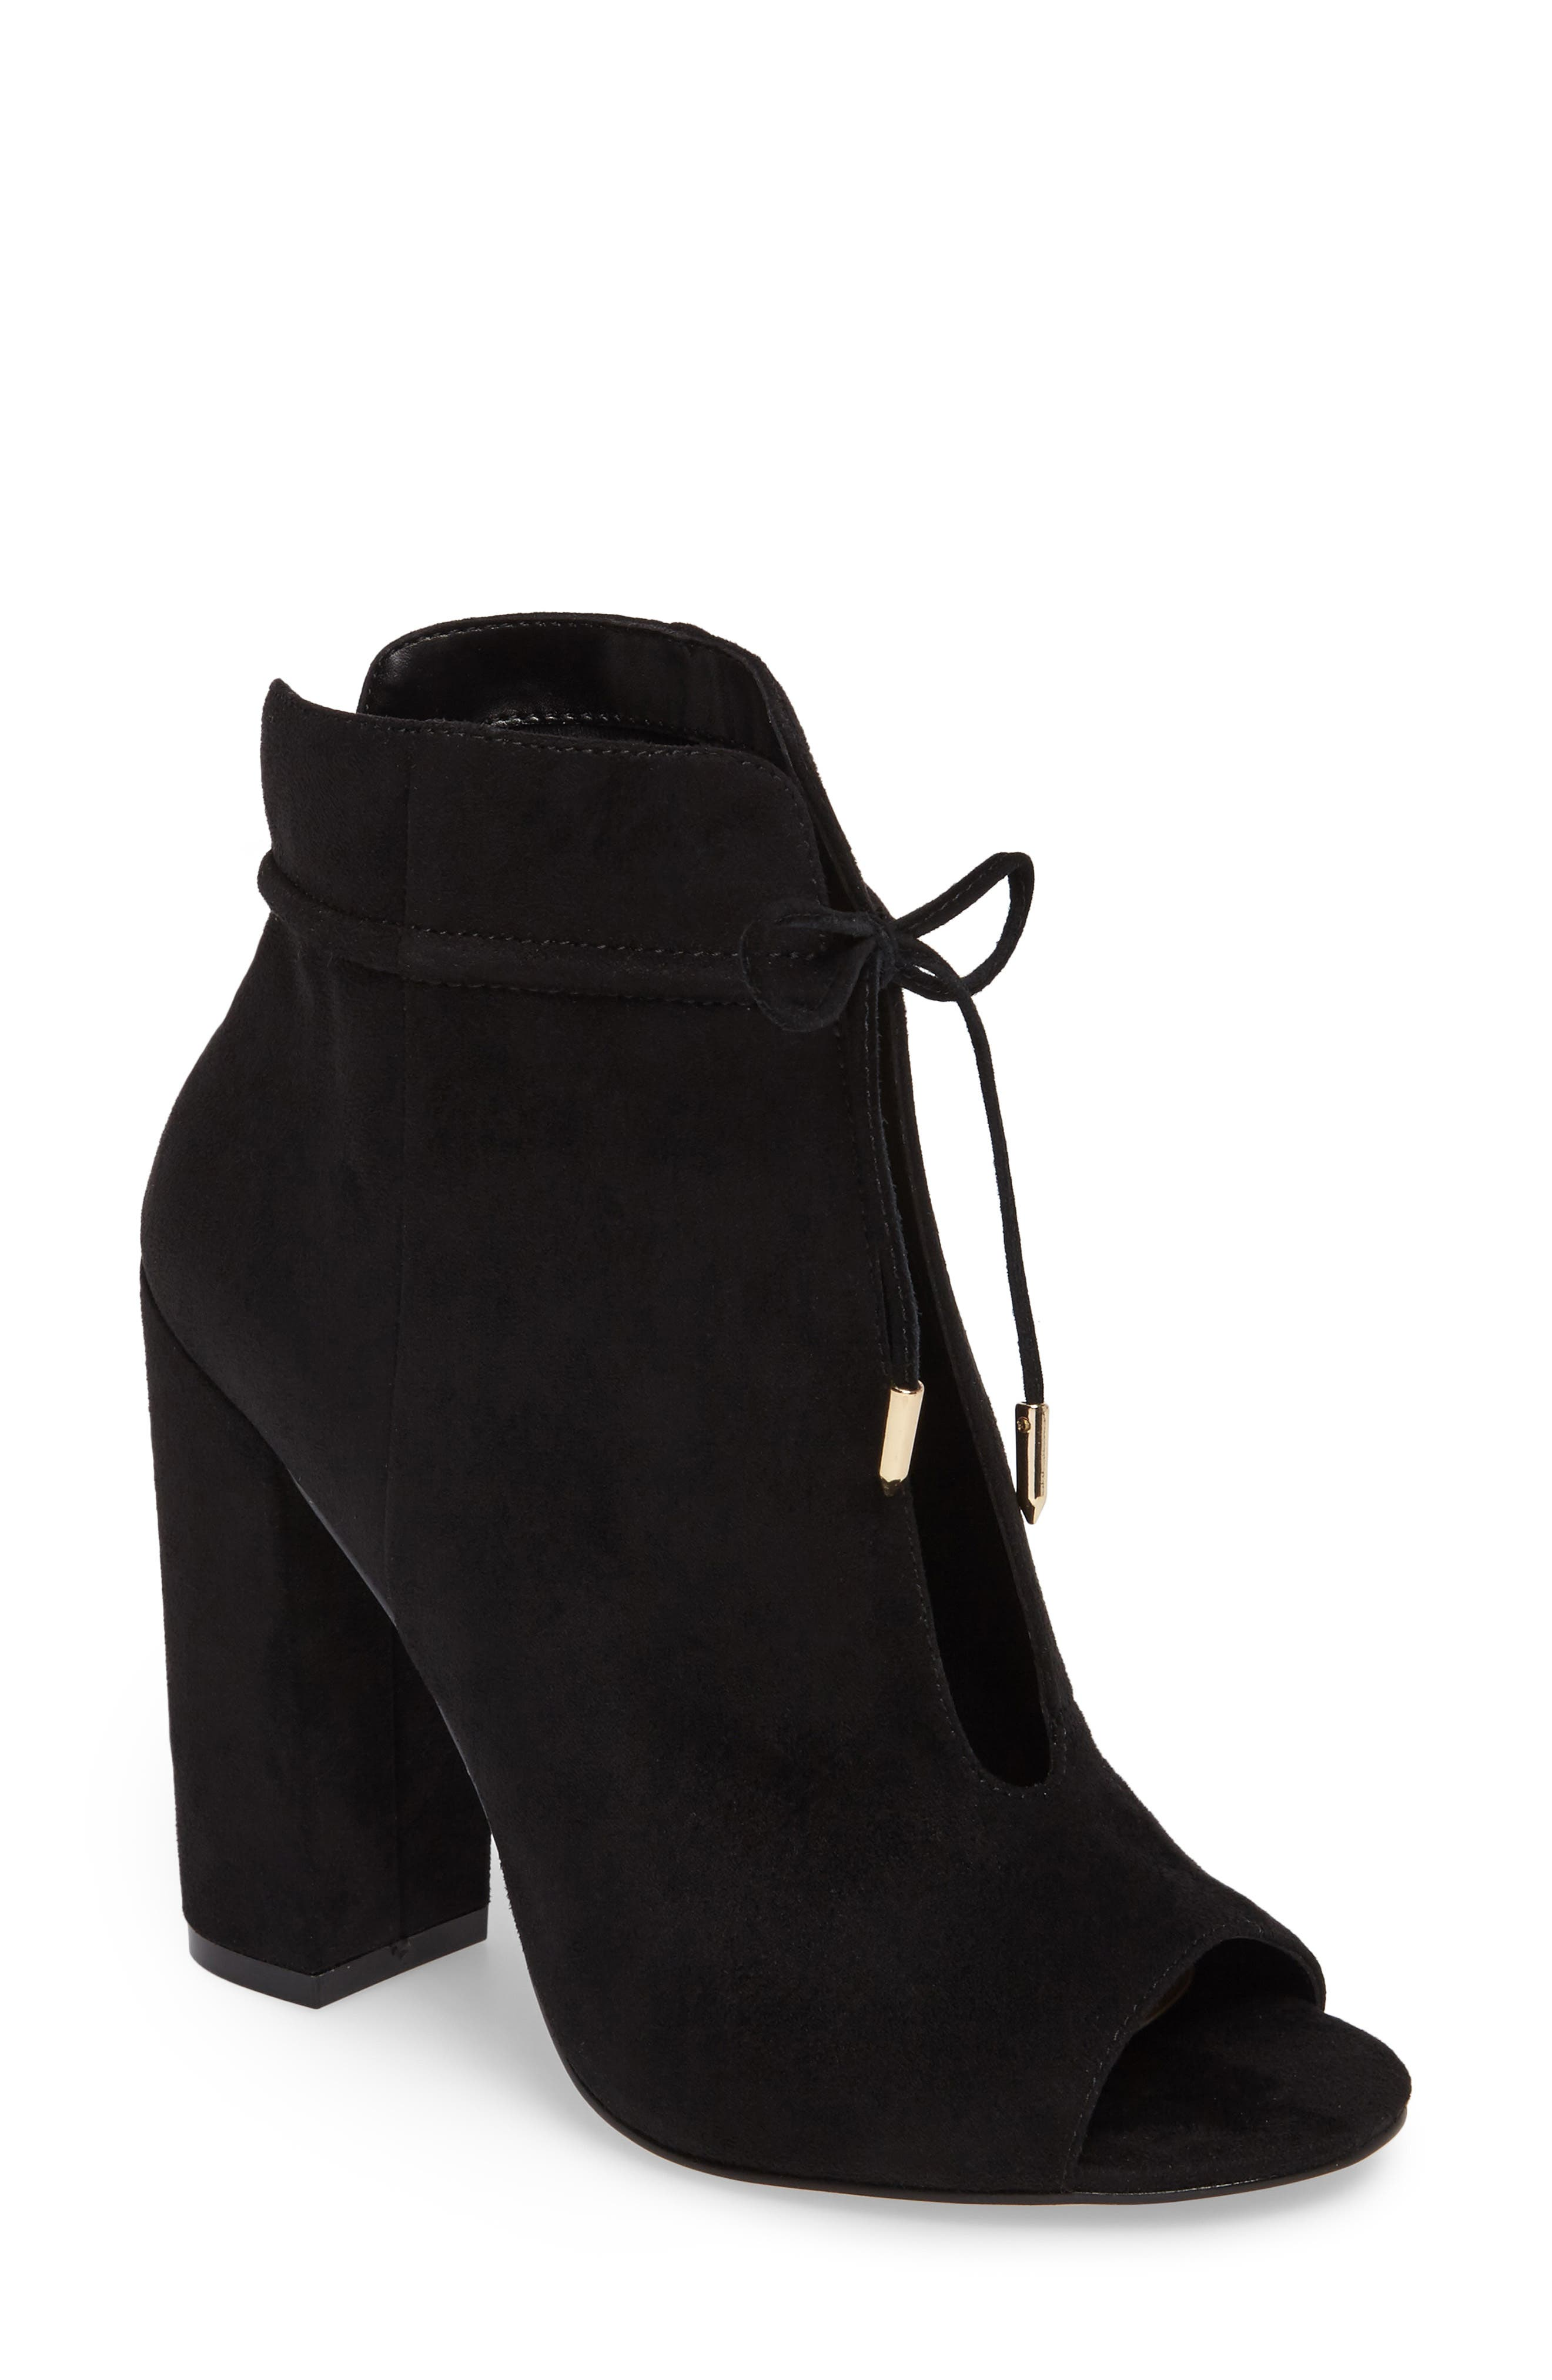 Daya by Zendaya Netty Open Toe Bootie (Women)